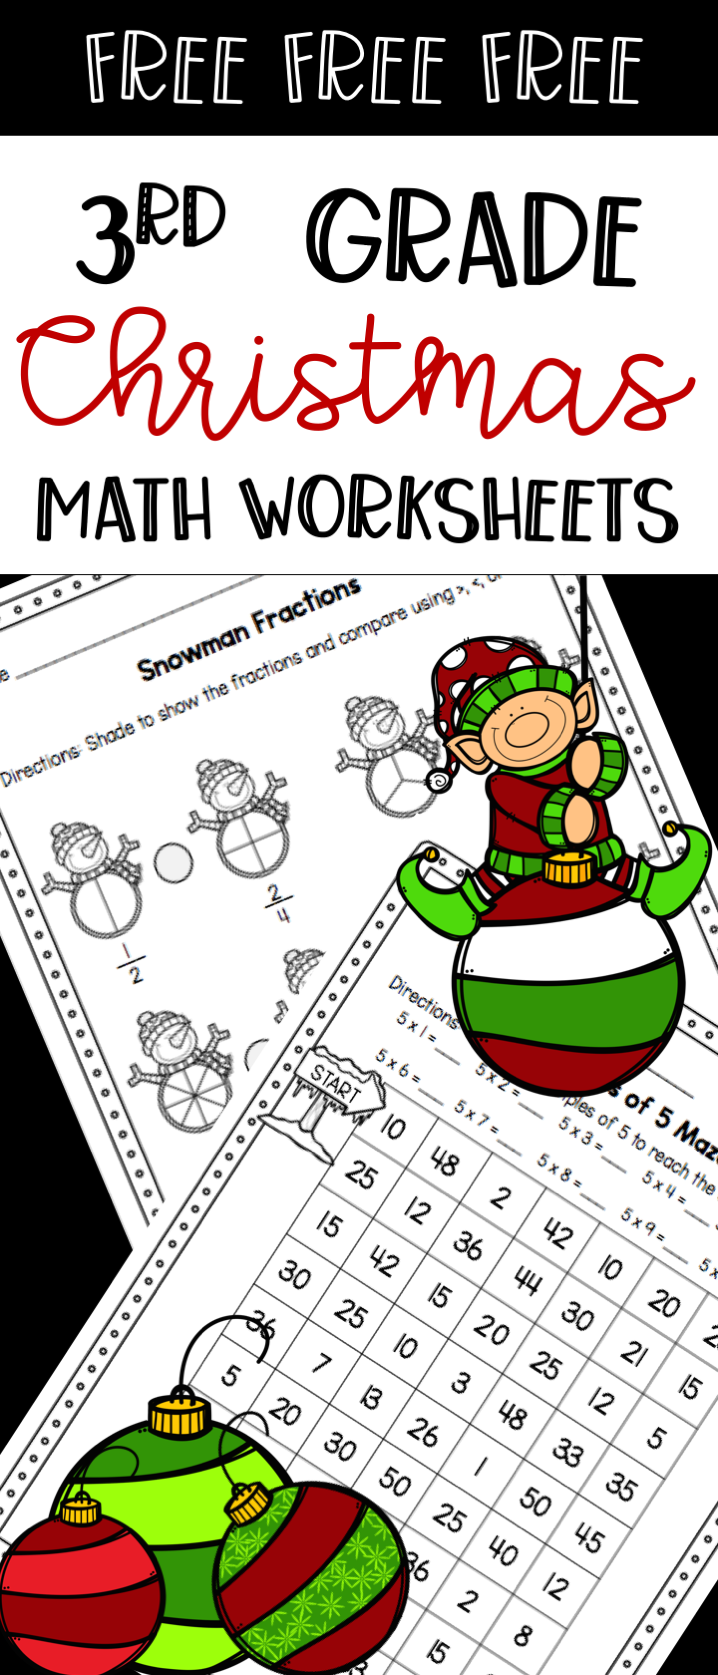 medium resolution of Free 3rd grade Christmas math worksheets - comparing fractions and  multiplication products of 5 - fun rev…   Christmas math worksheets